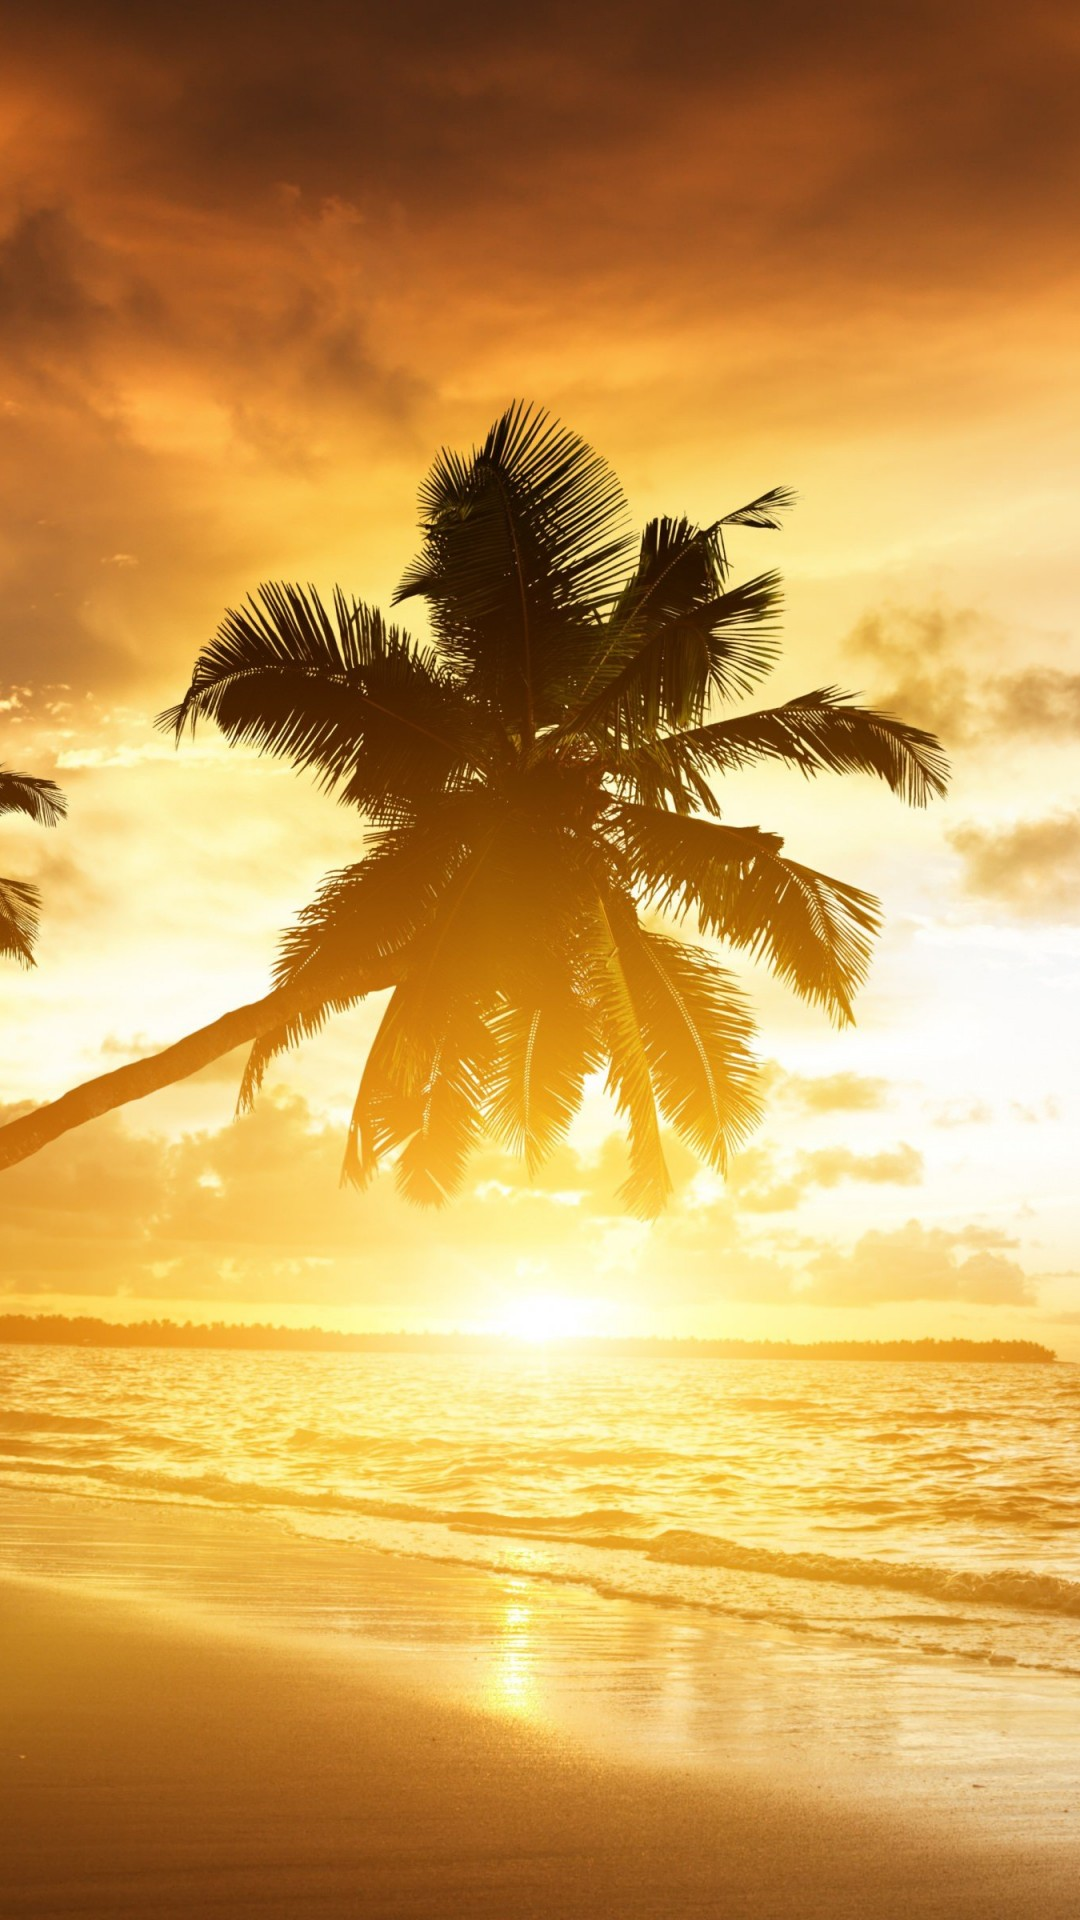 Beach With Palm Trees At Sunset Wallpaper for SAMSUNG Galaxy S4